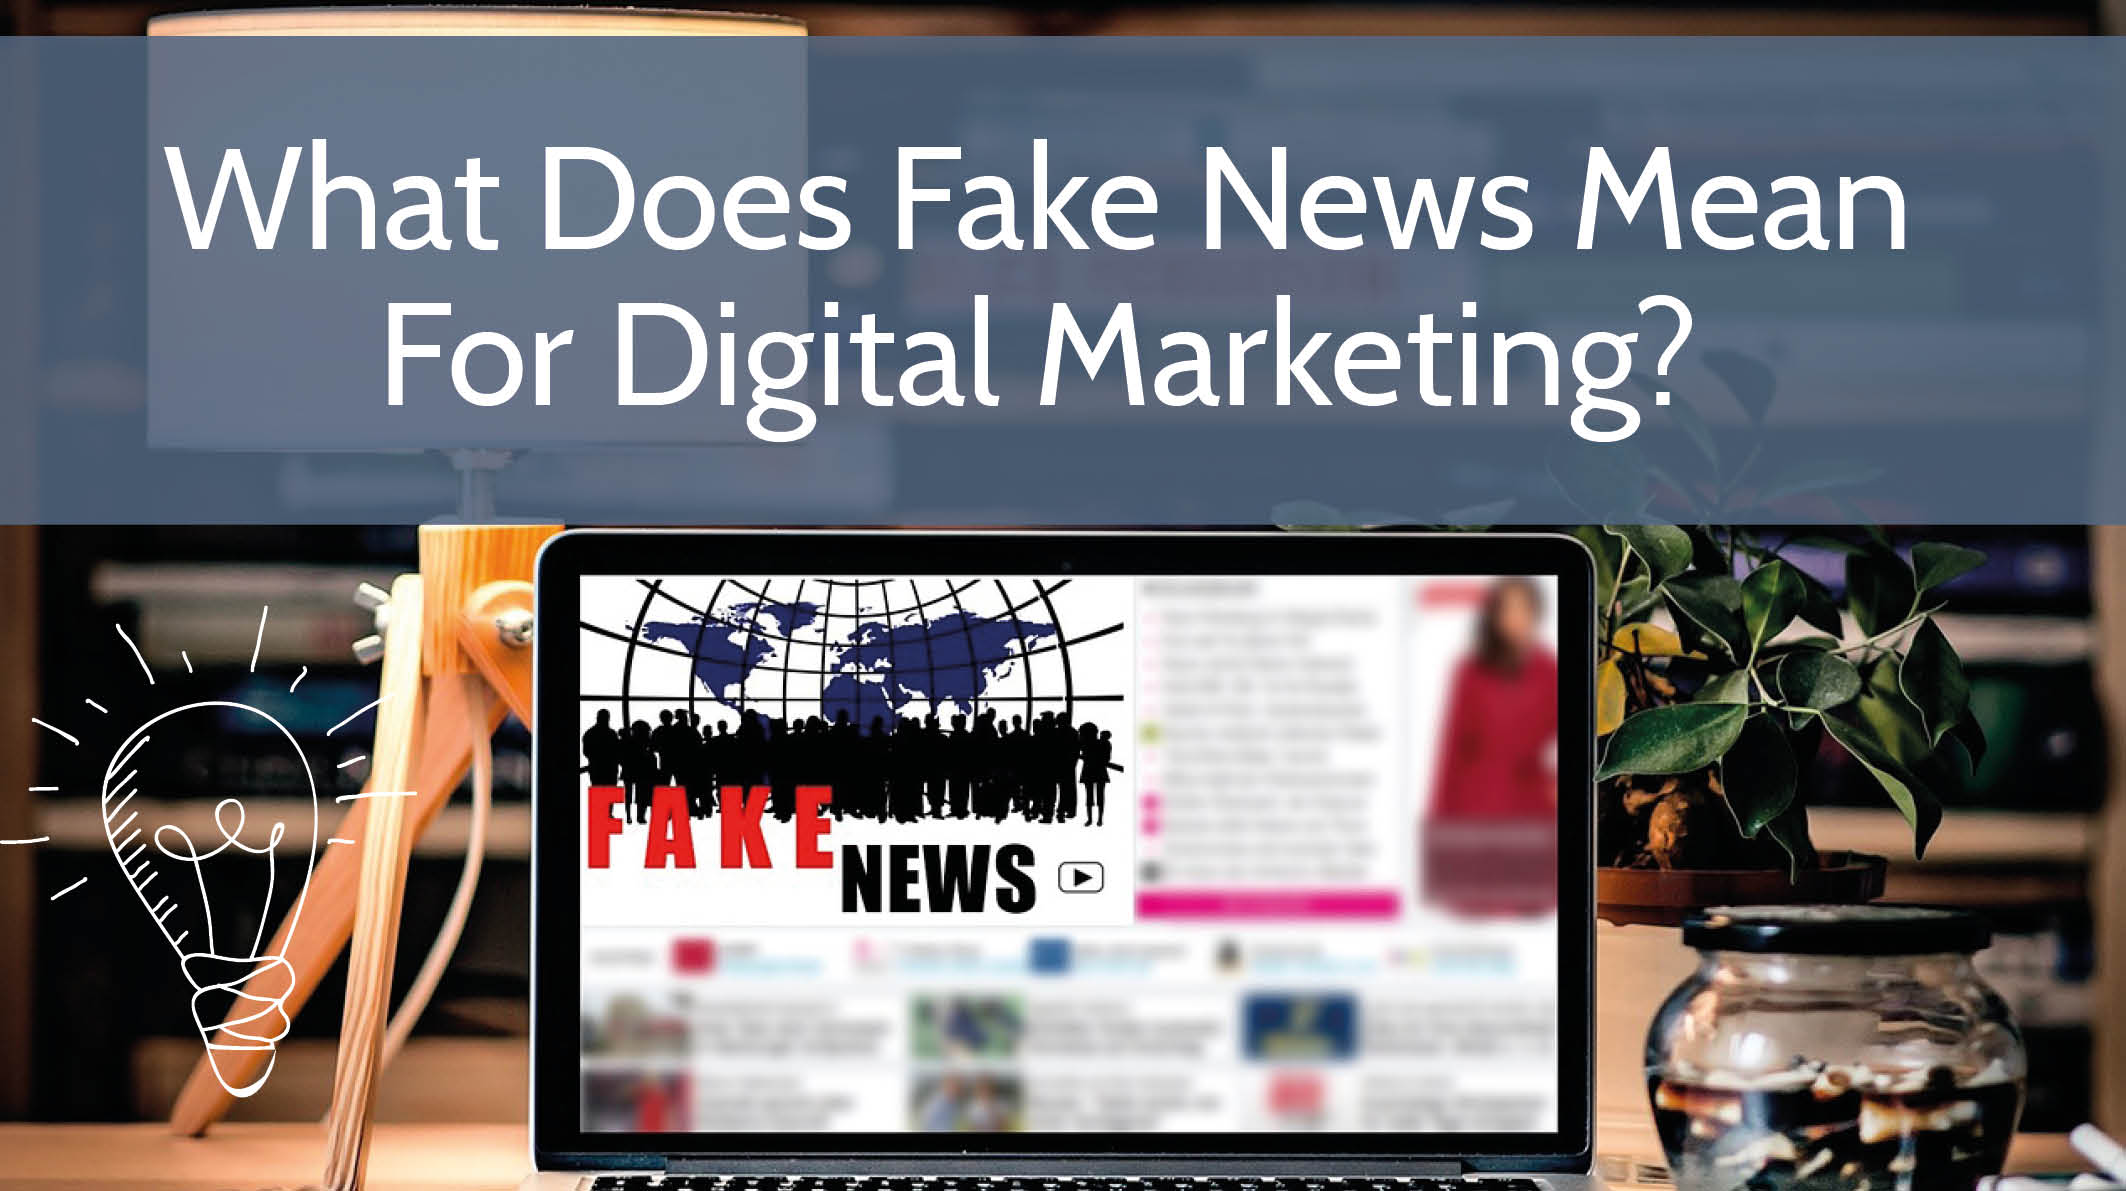 What Does Fake News Mean for Digital Marketing